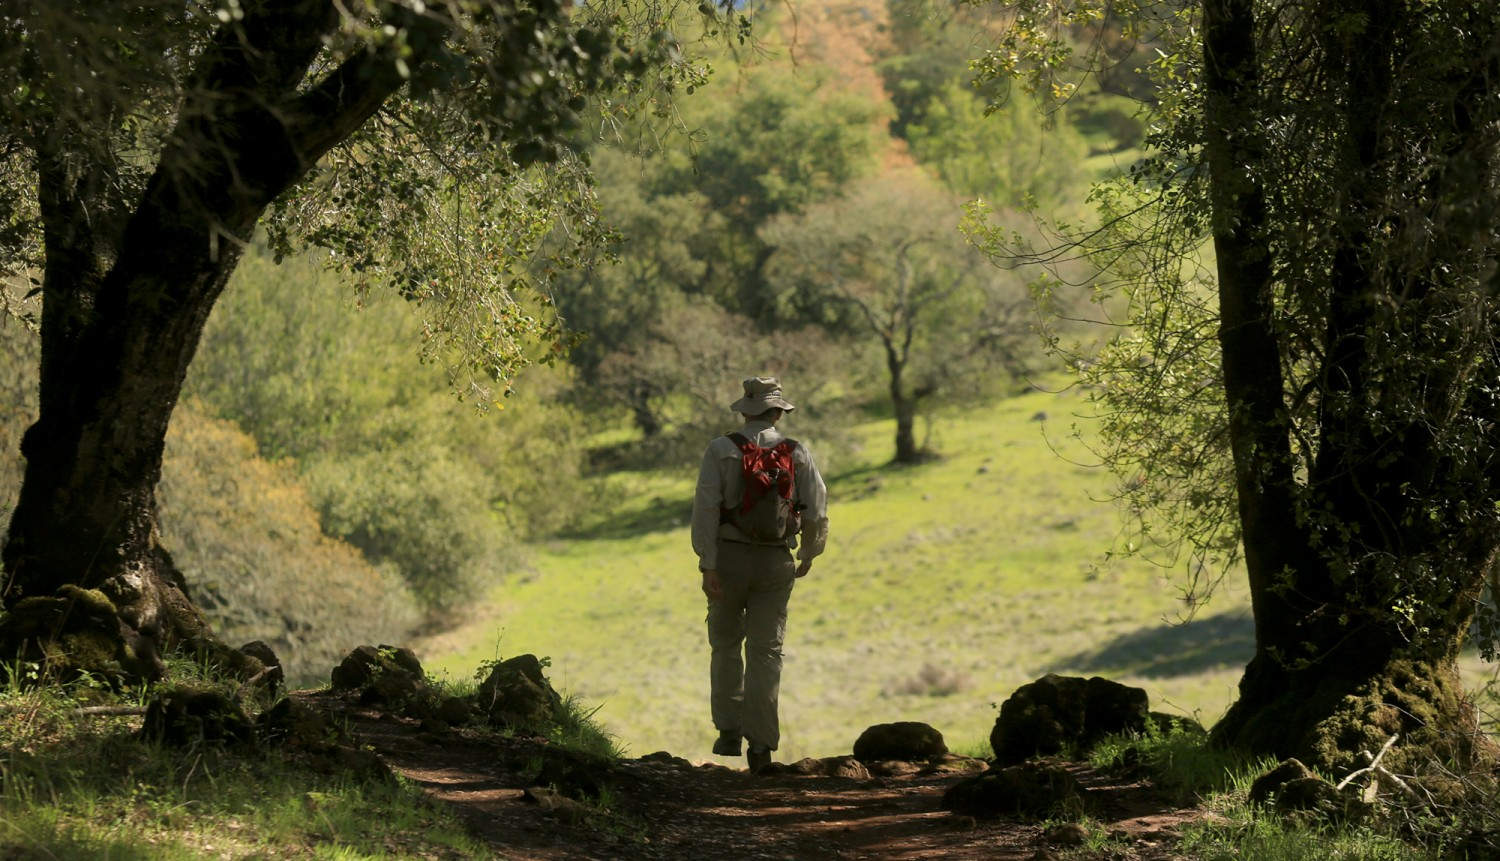 Phil Weil hikes Annadel State Park in search of early wildflower blooms, in Santa Rosa, Monday Feb. 22, 2016. (Kent Porter / Press Democrat)